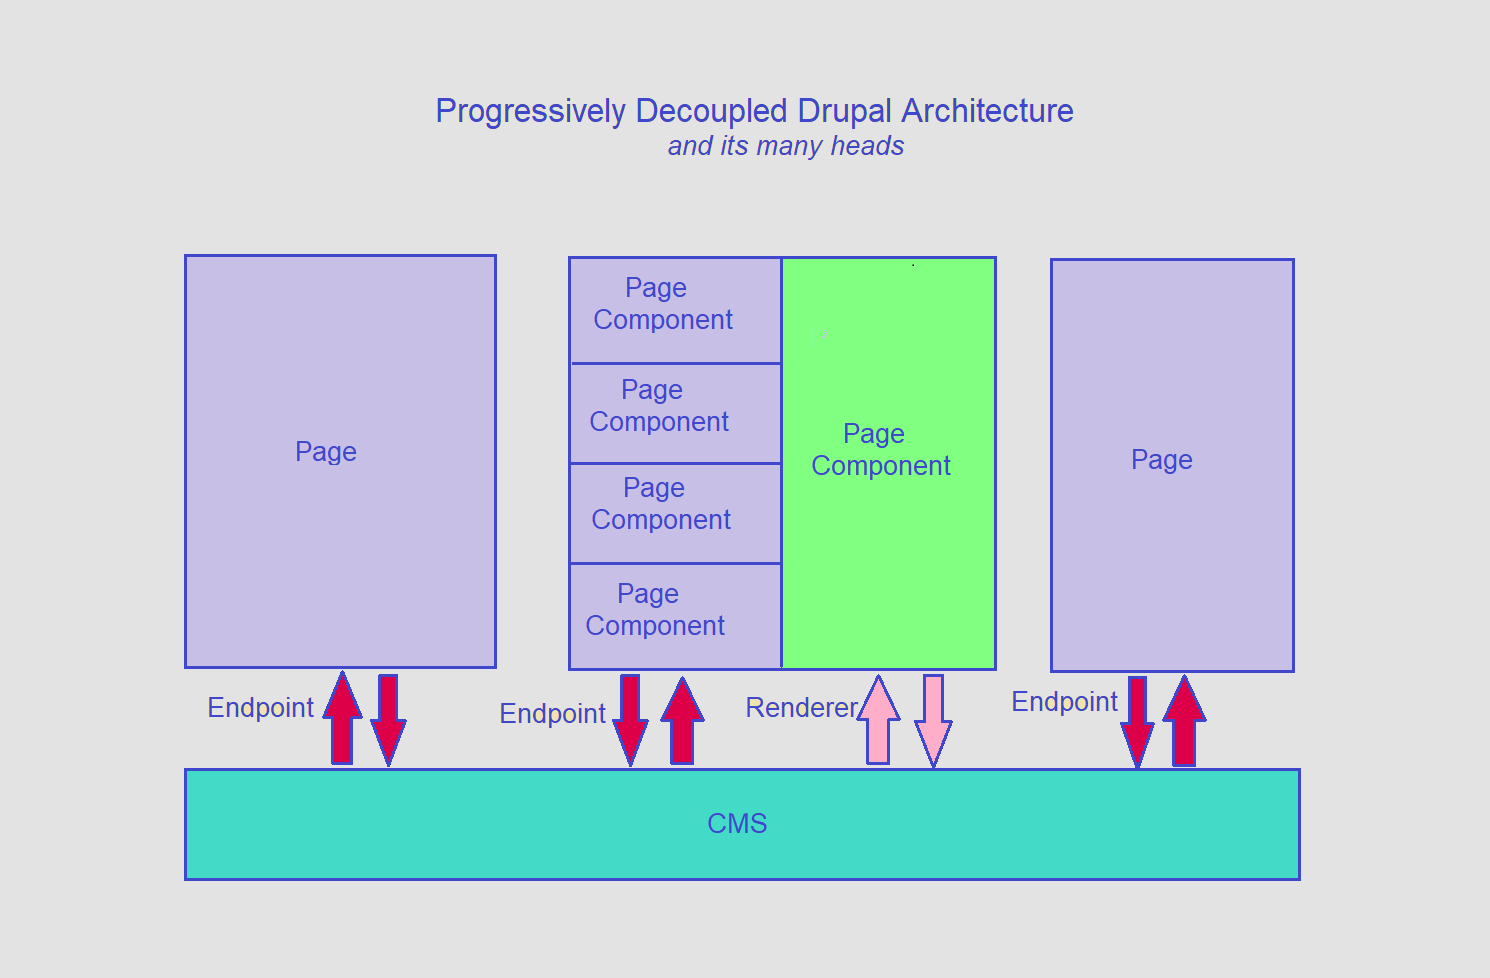 The layout of a progressively decoupled Drupal architecture is shown to depict its many heads.